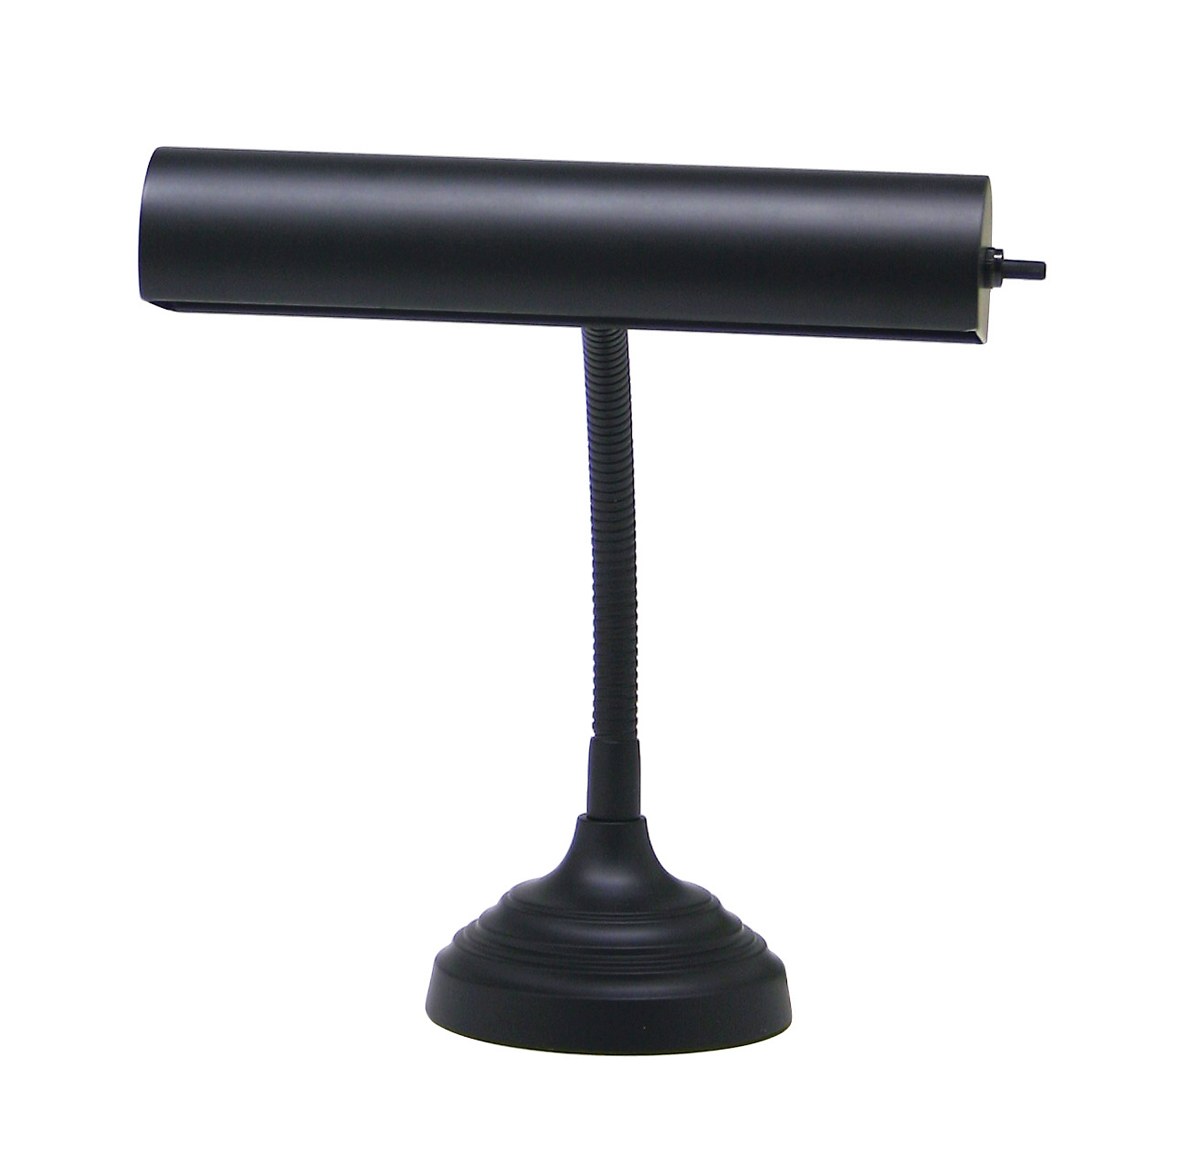 House of troy ap10 20 advent 10 inch piano desk lamp for 10 inch table lamp